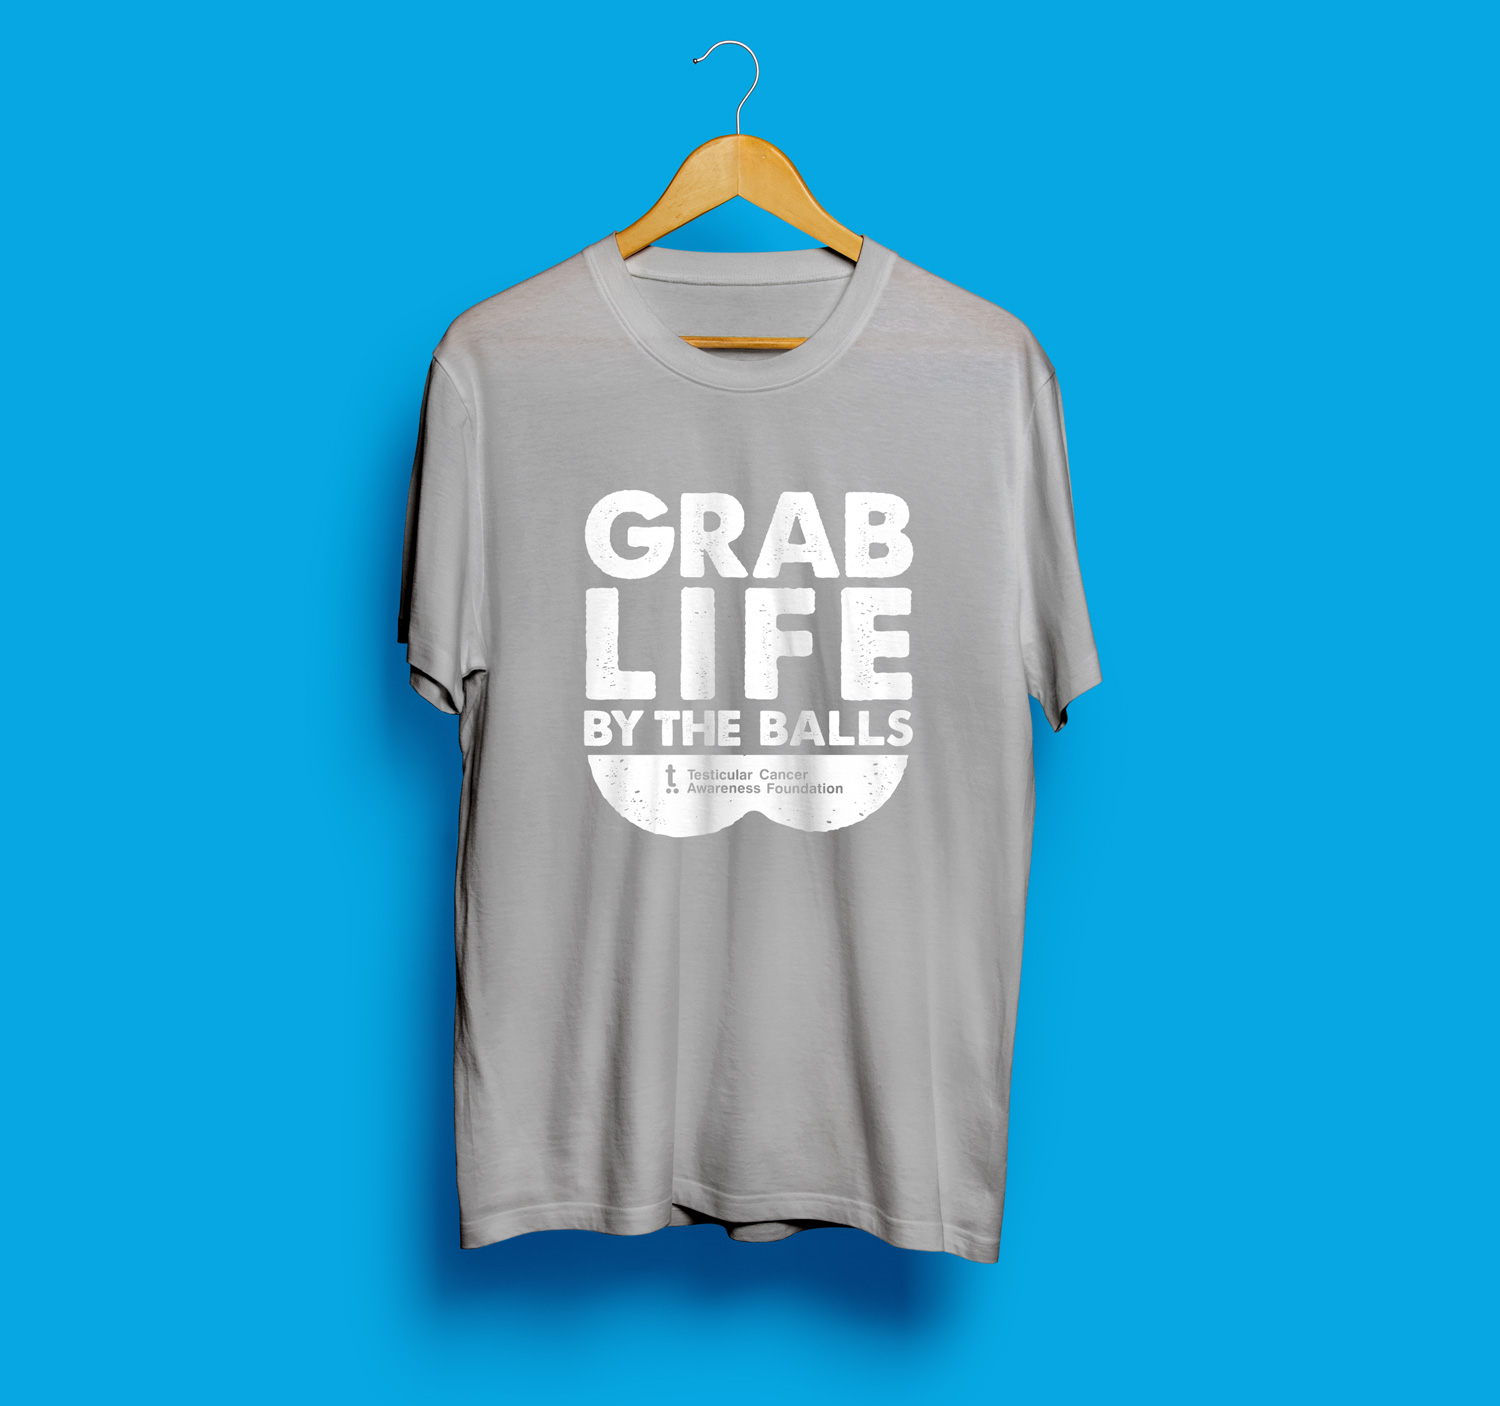 3f334d9c NEW Grab Life By The Balls Tee Grey with White — Testicular Cancer  Awareness Foundation